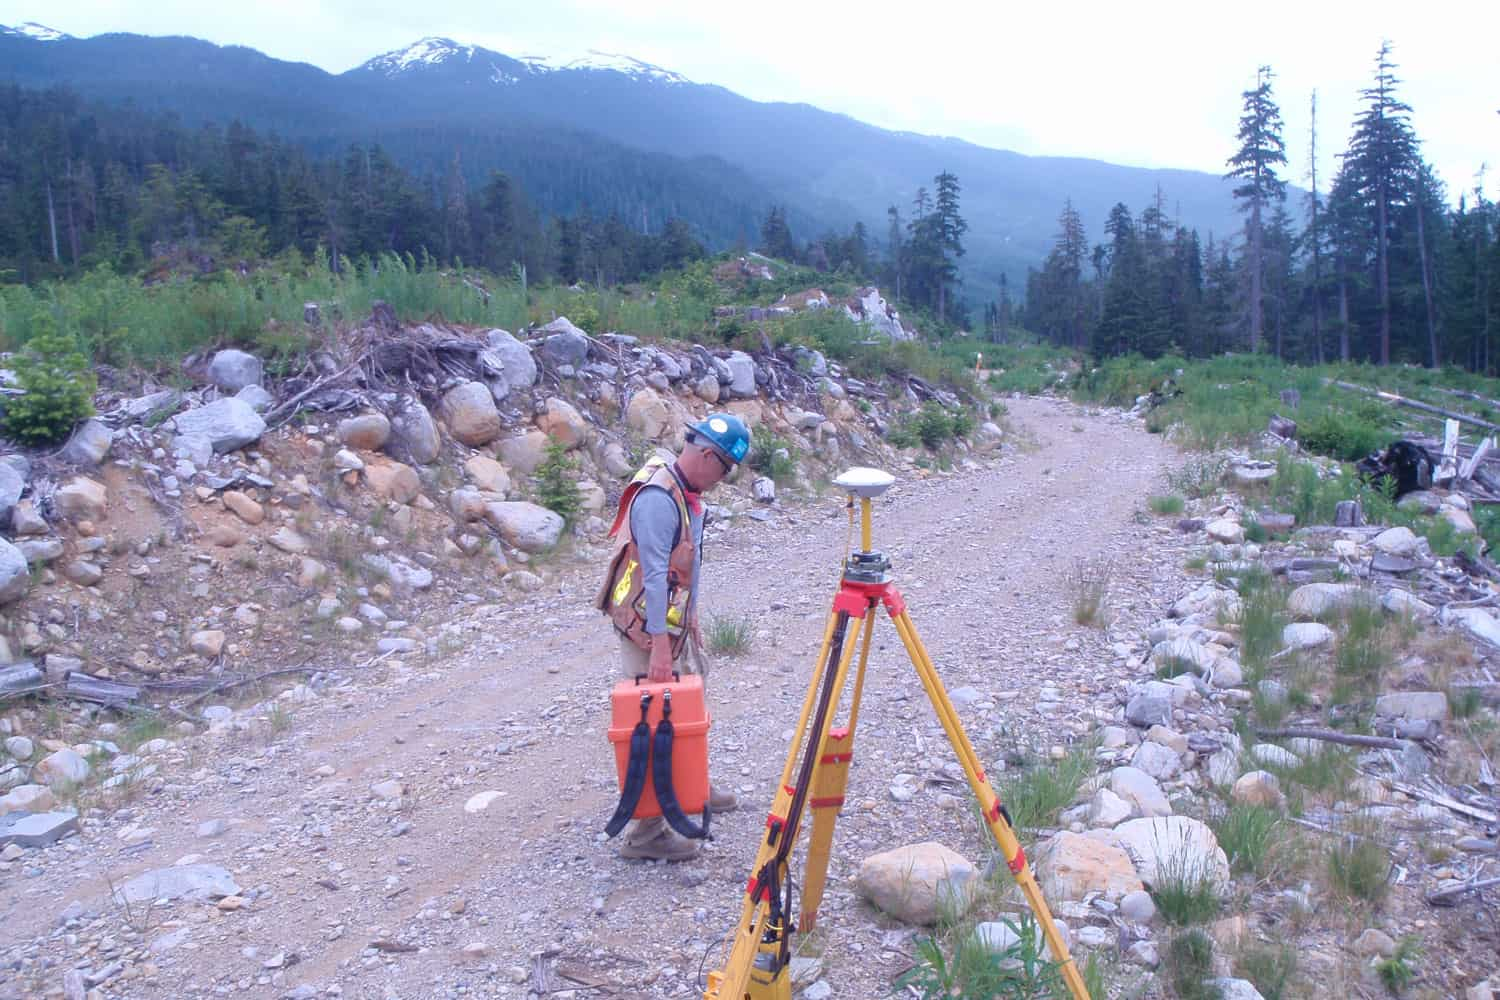 GPS Photo control survey for 2010 Olympic mapping project for the DND. J. Newton. Whistler, BC, 2009.